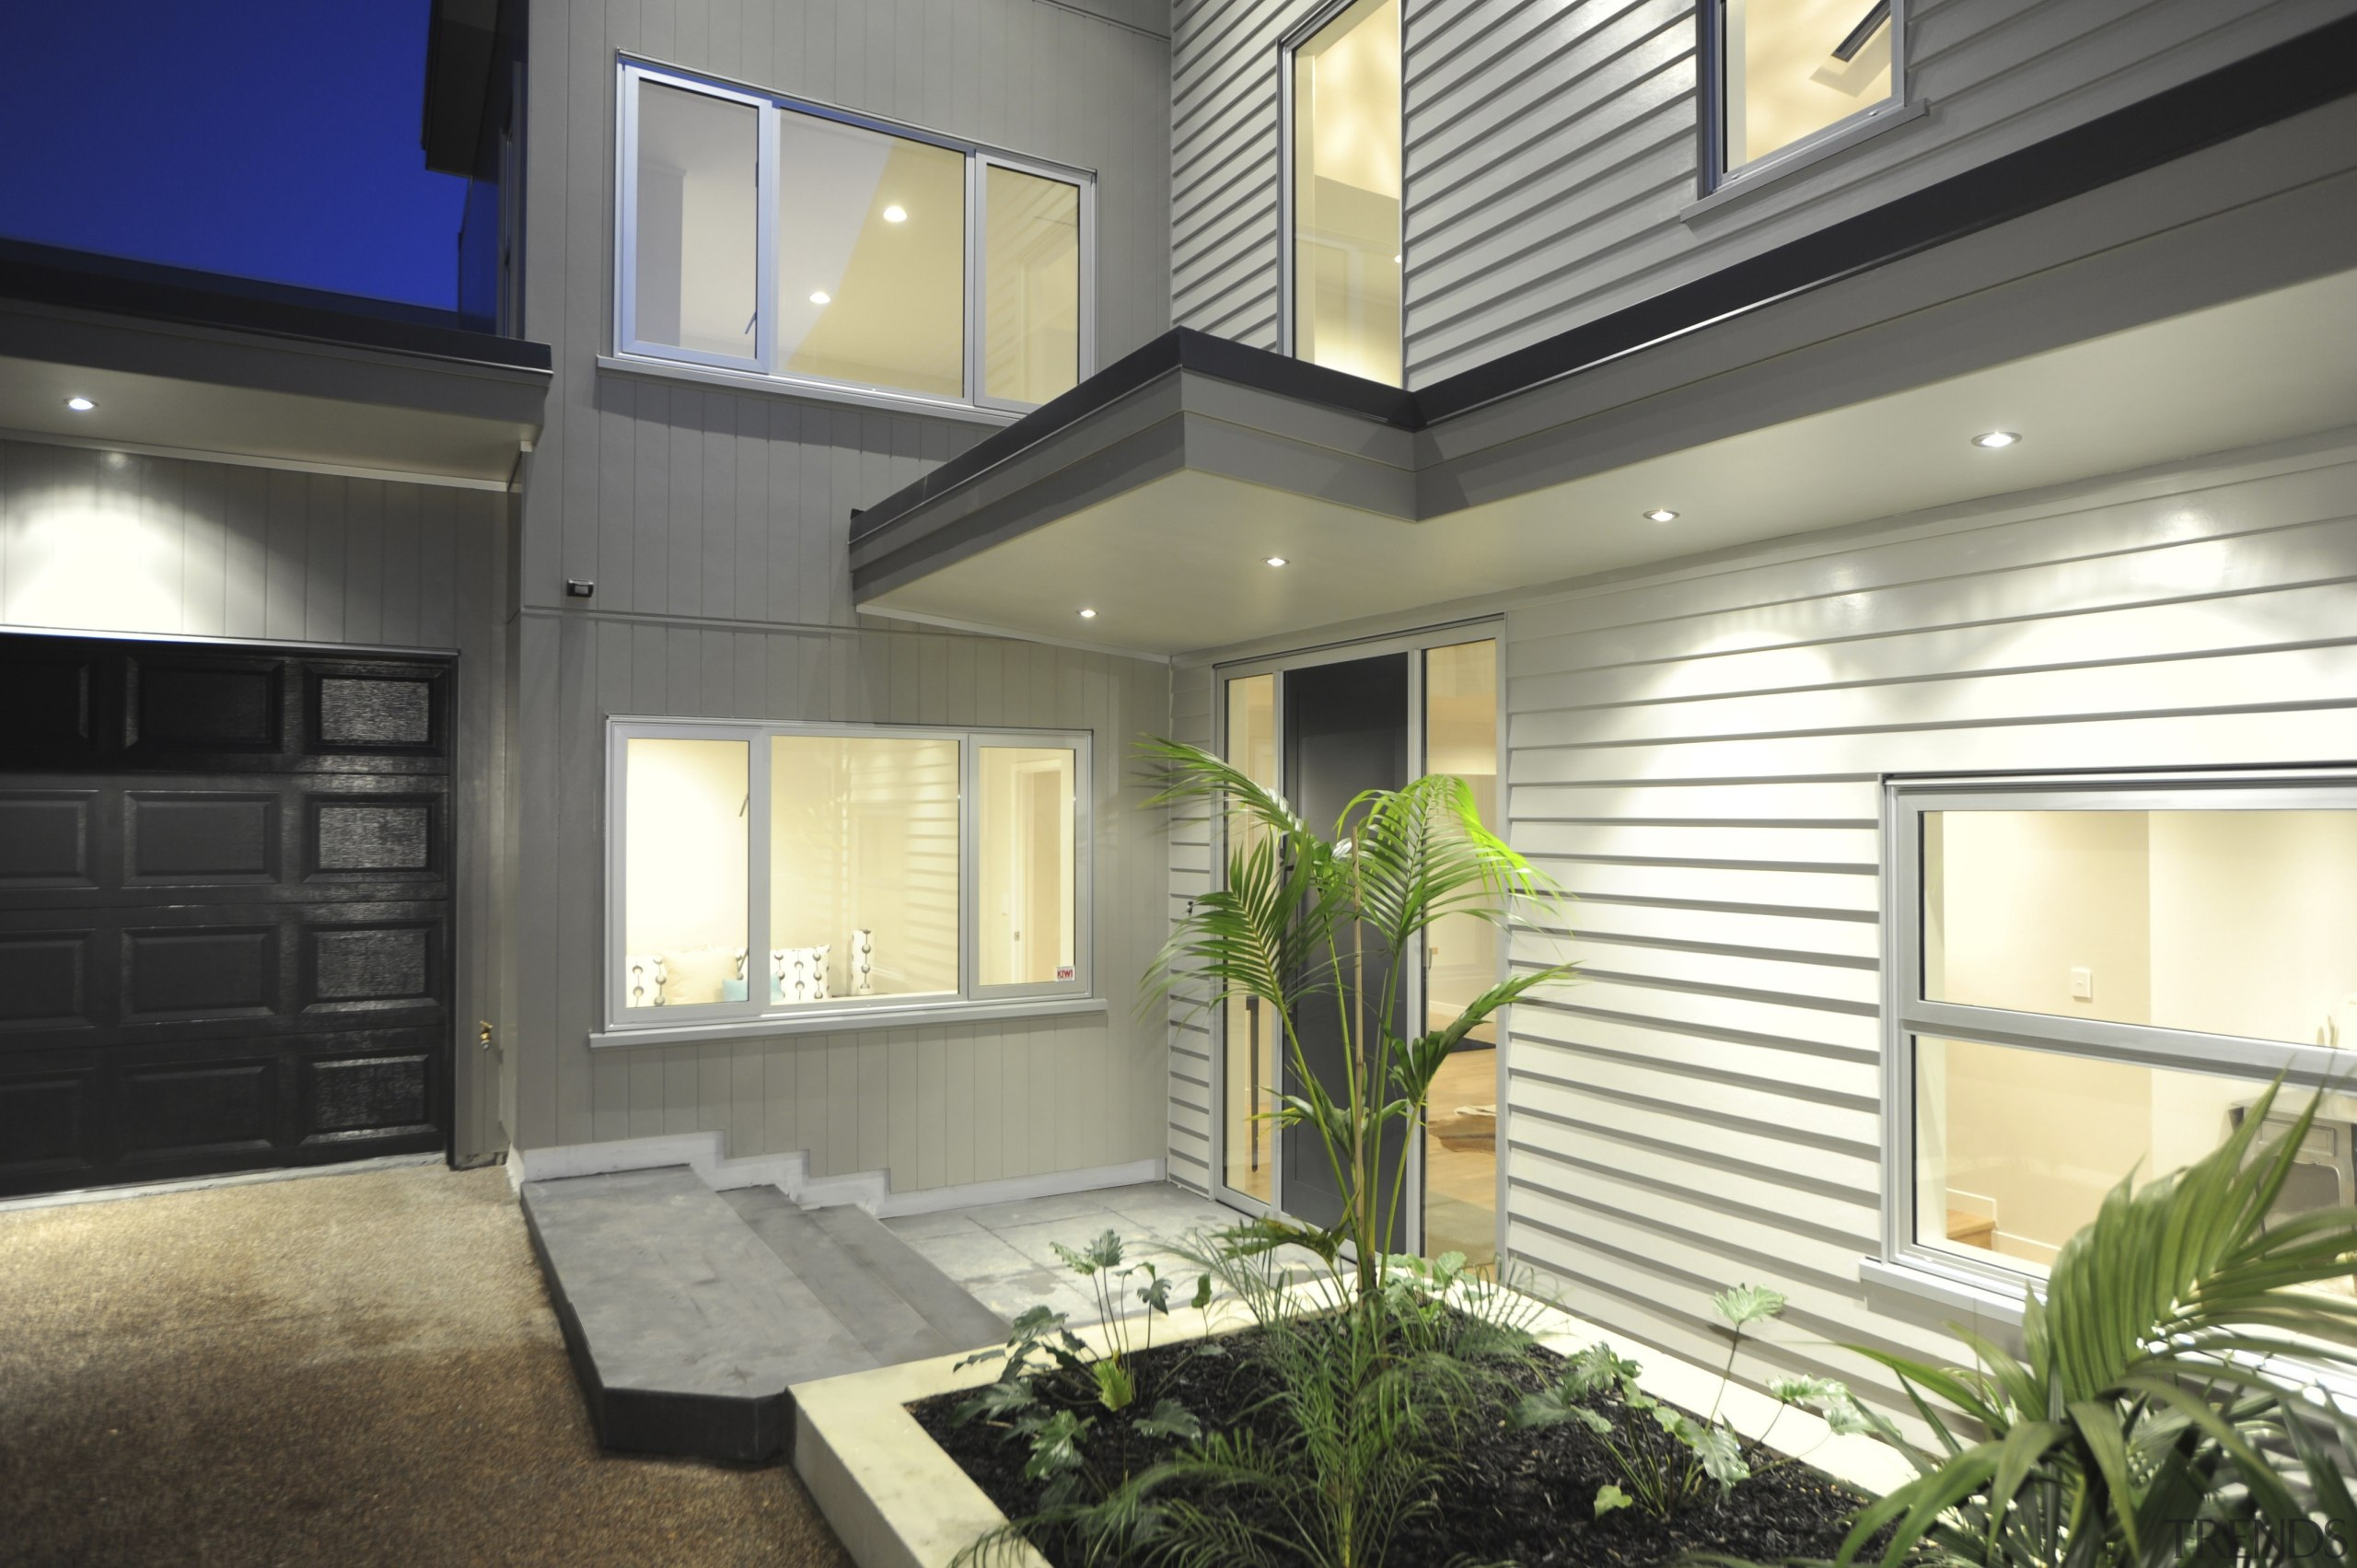 Axon Panel and Linea Weatherboard - Axon Panel architecture, daylighting, estate, facade, home, house, interior design, property, real estate, siding, window, gray